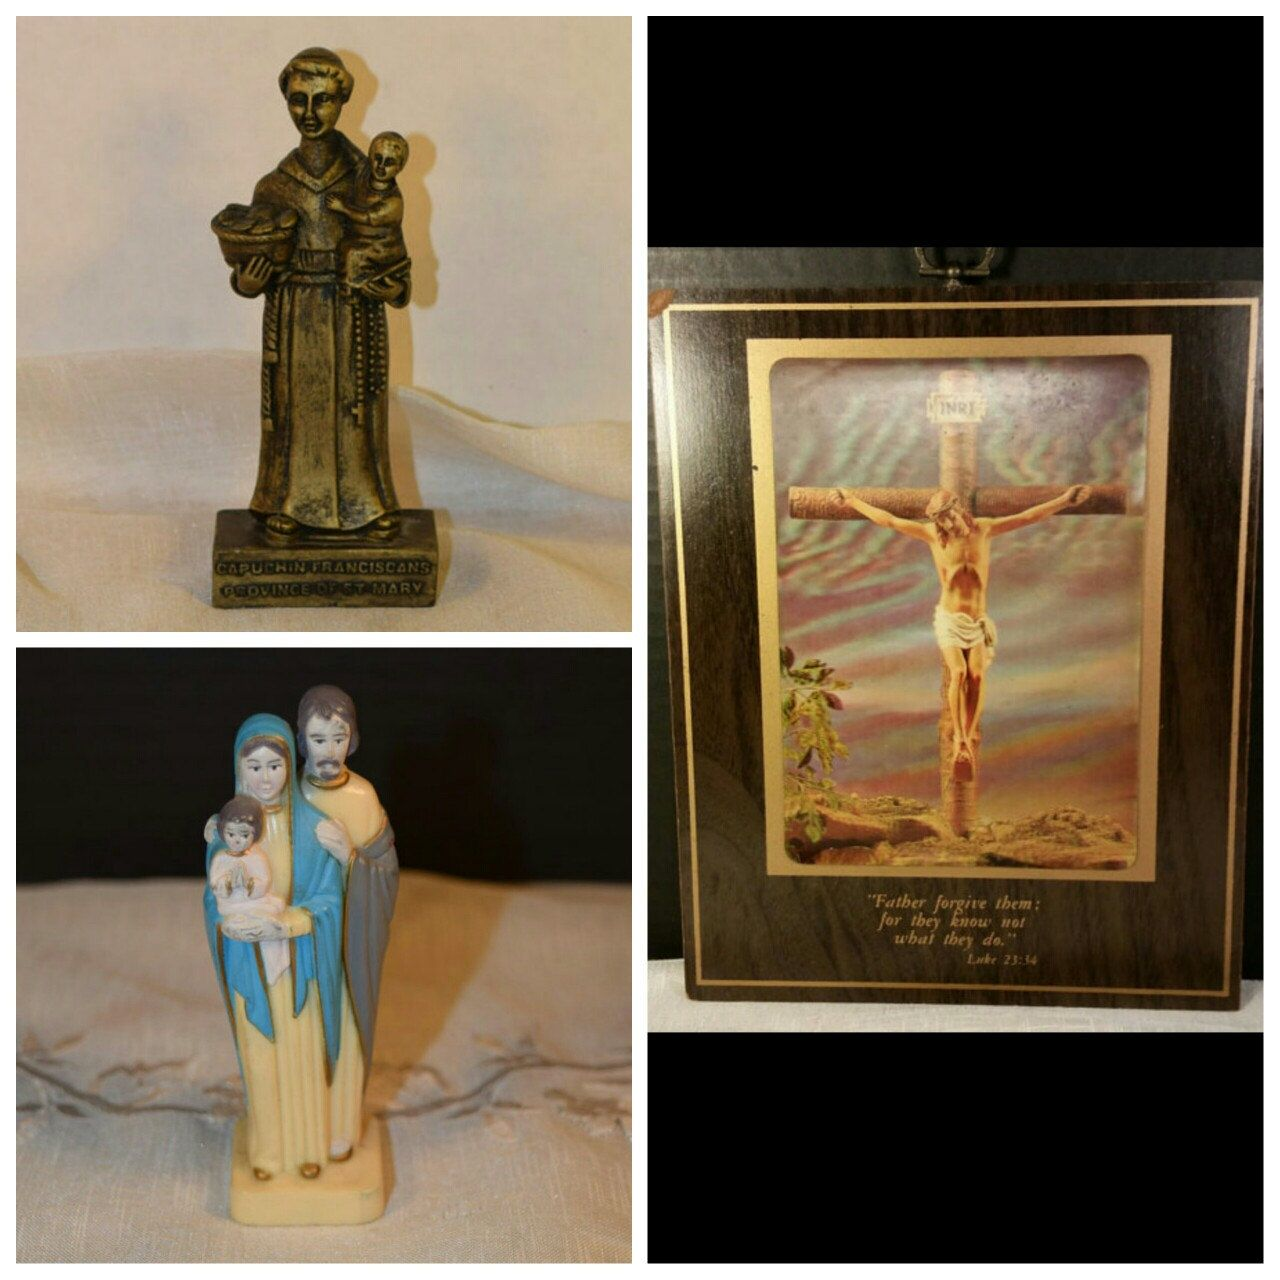 Vintage religious finds at Shellyssselectsalvage.com